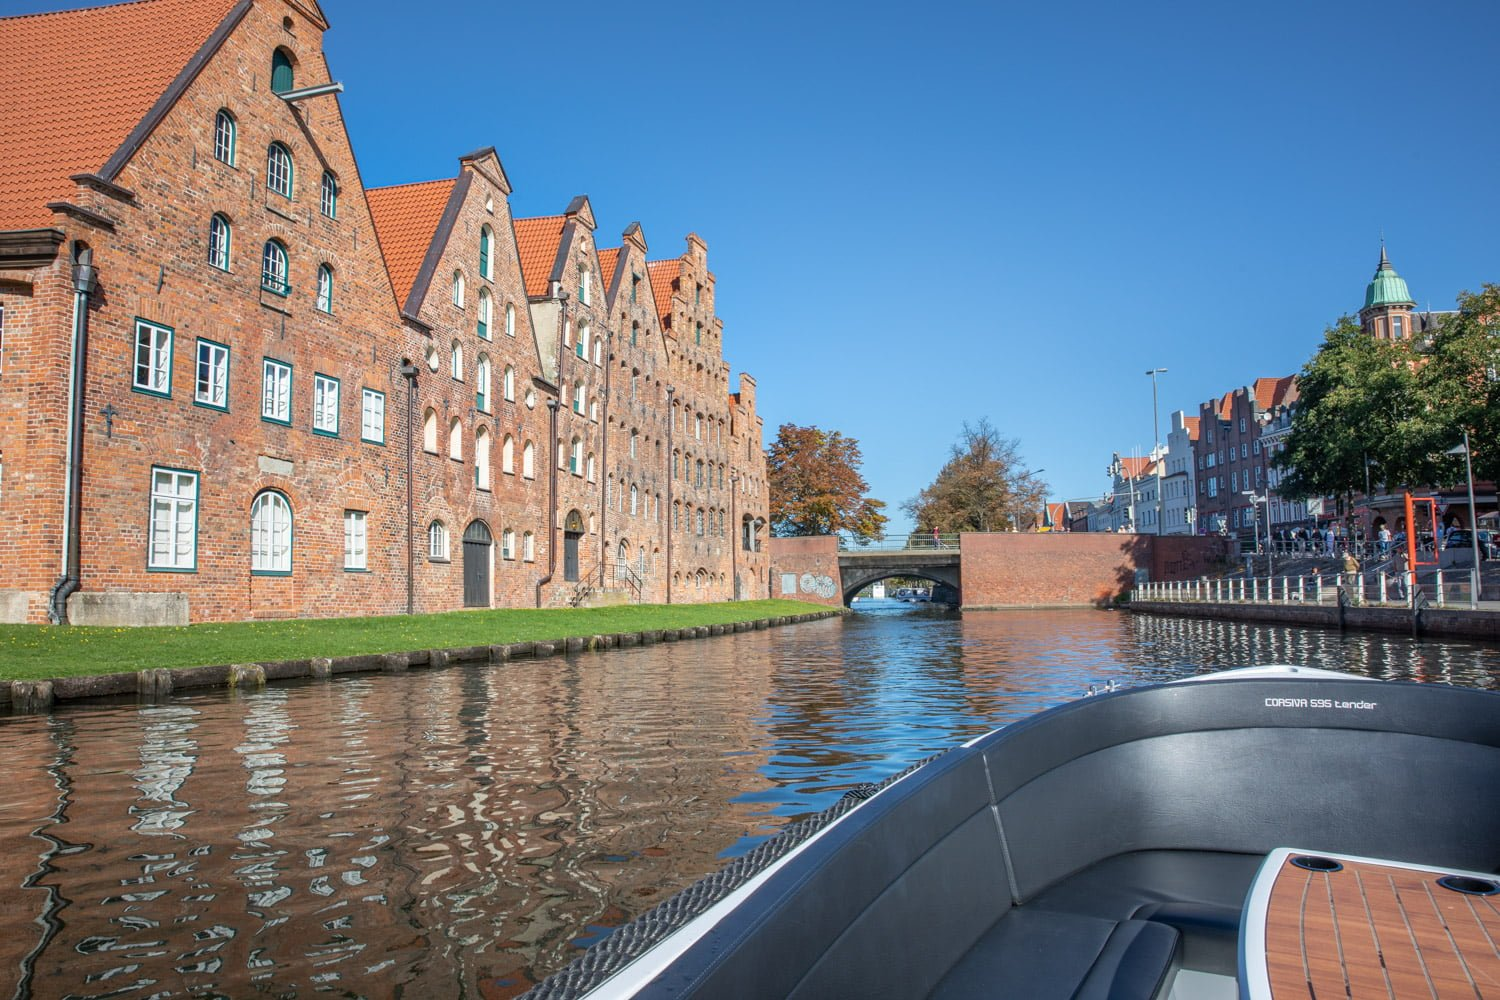 The houses are beutiful in Lubeck